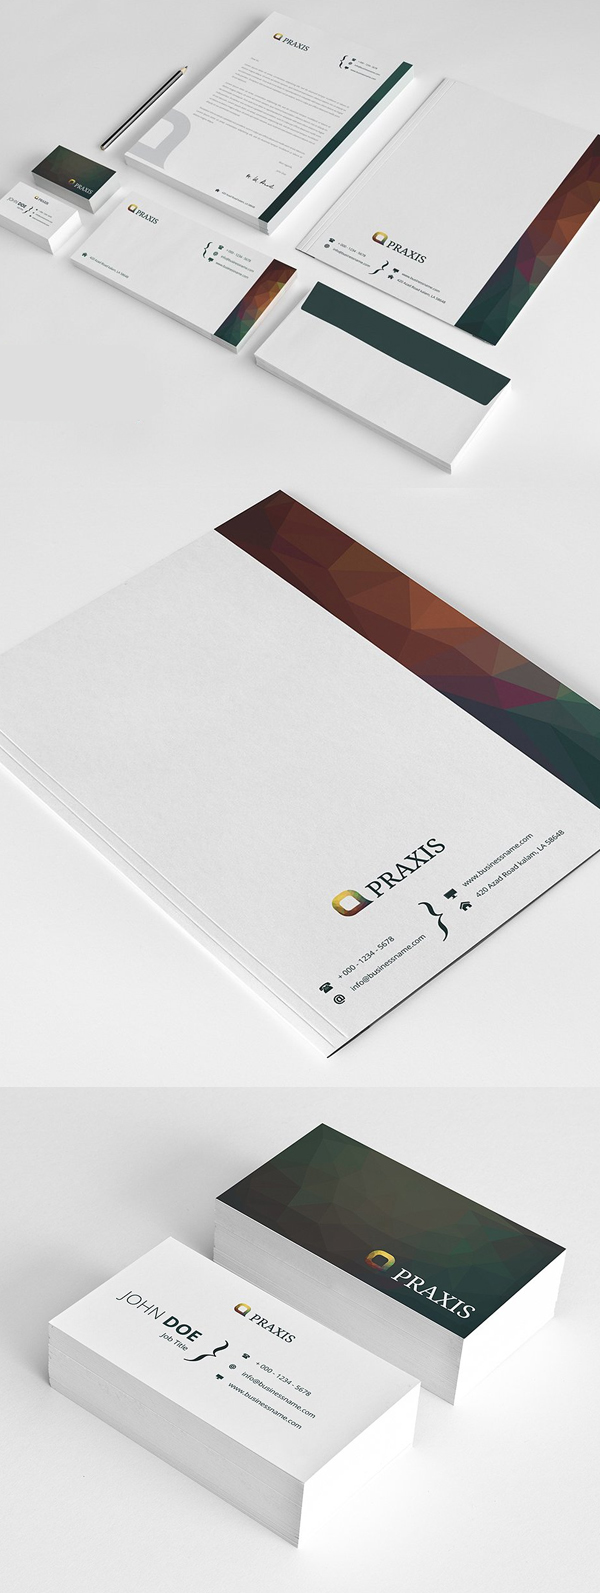 Modern Business Branding / Stationery Templates Design - 8